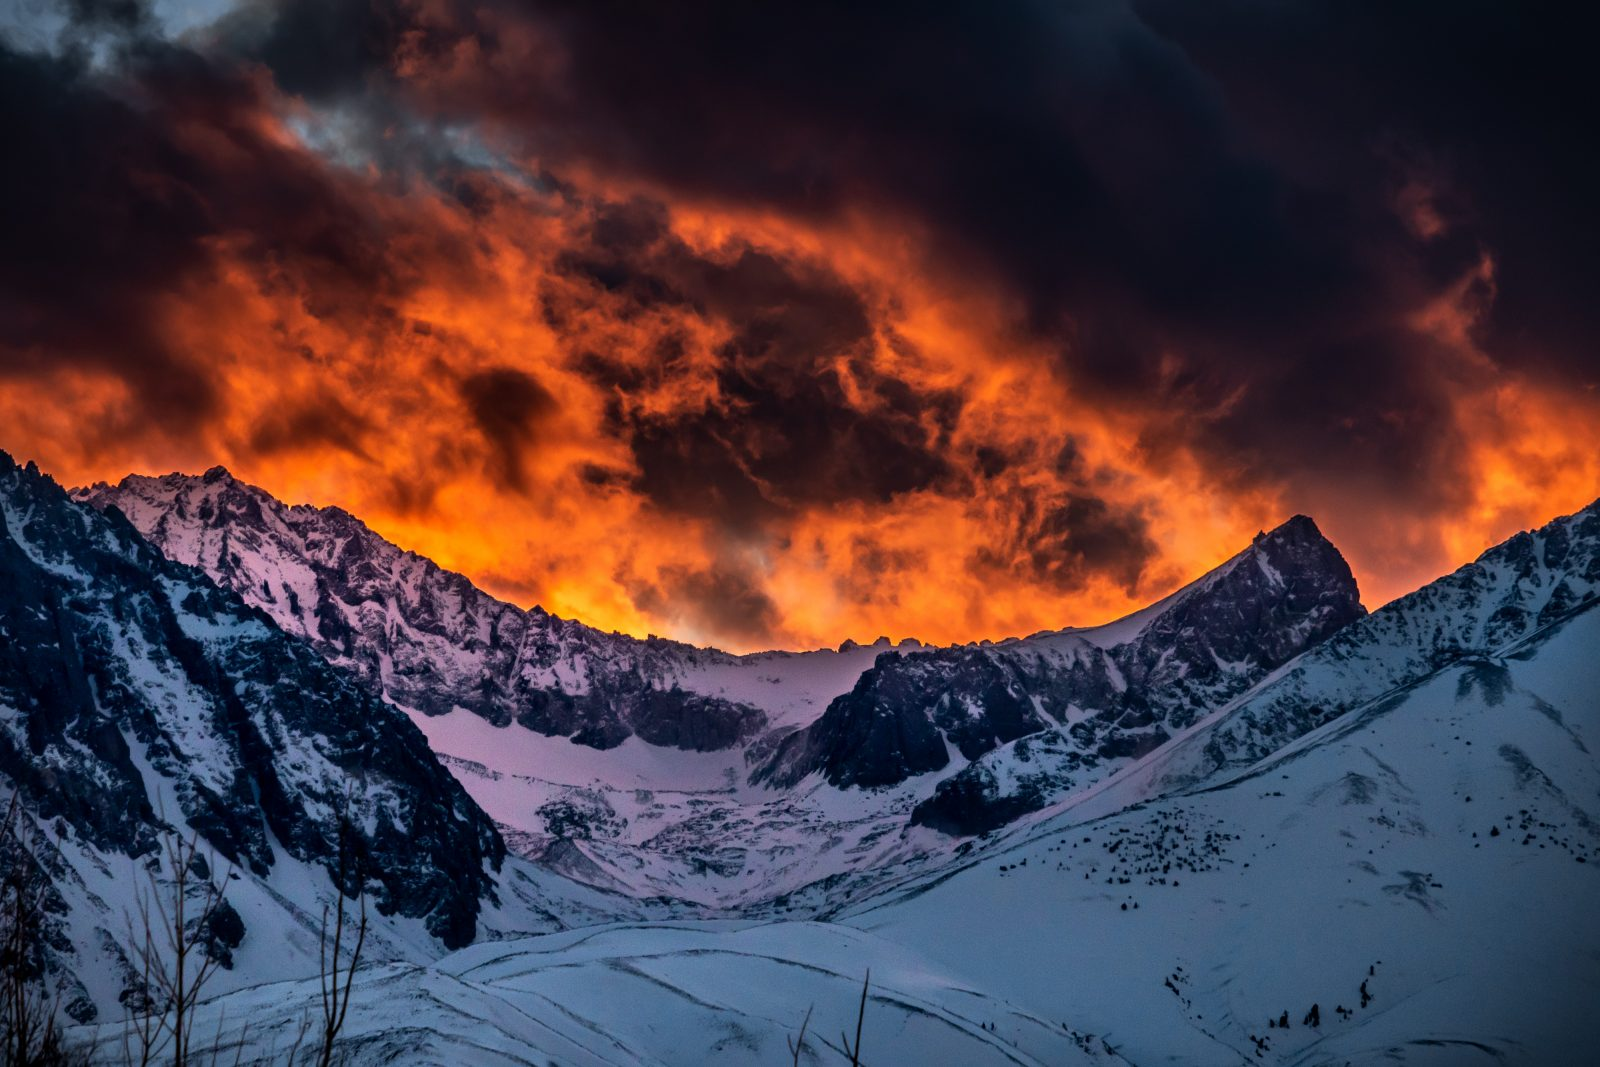 A Wild & Intense Sunset Over The SIerra Nevada (The Thumb)